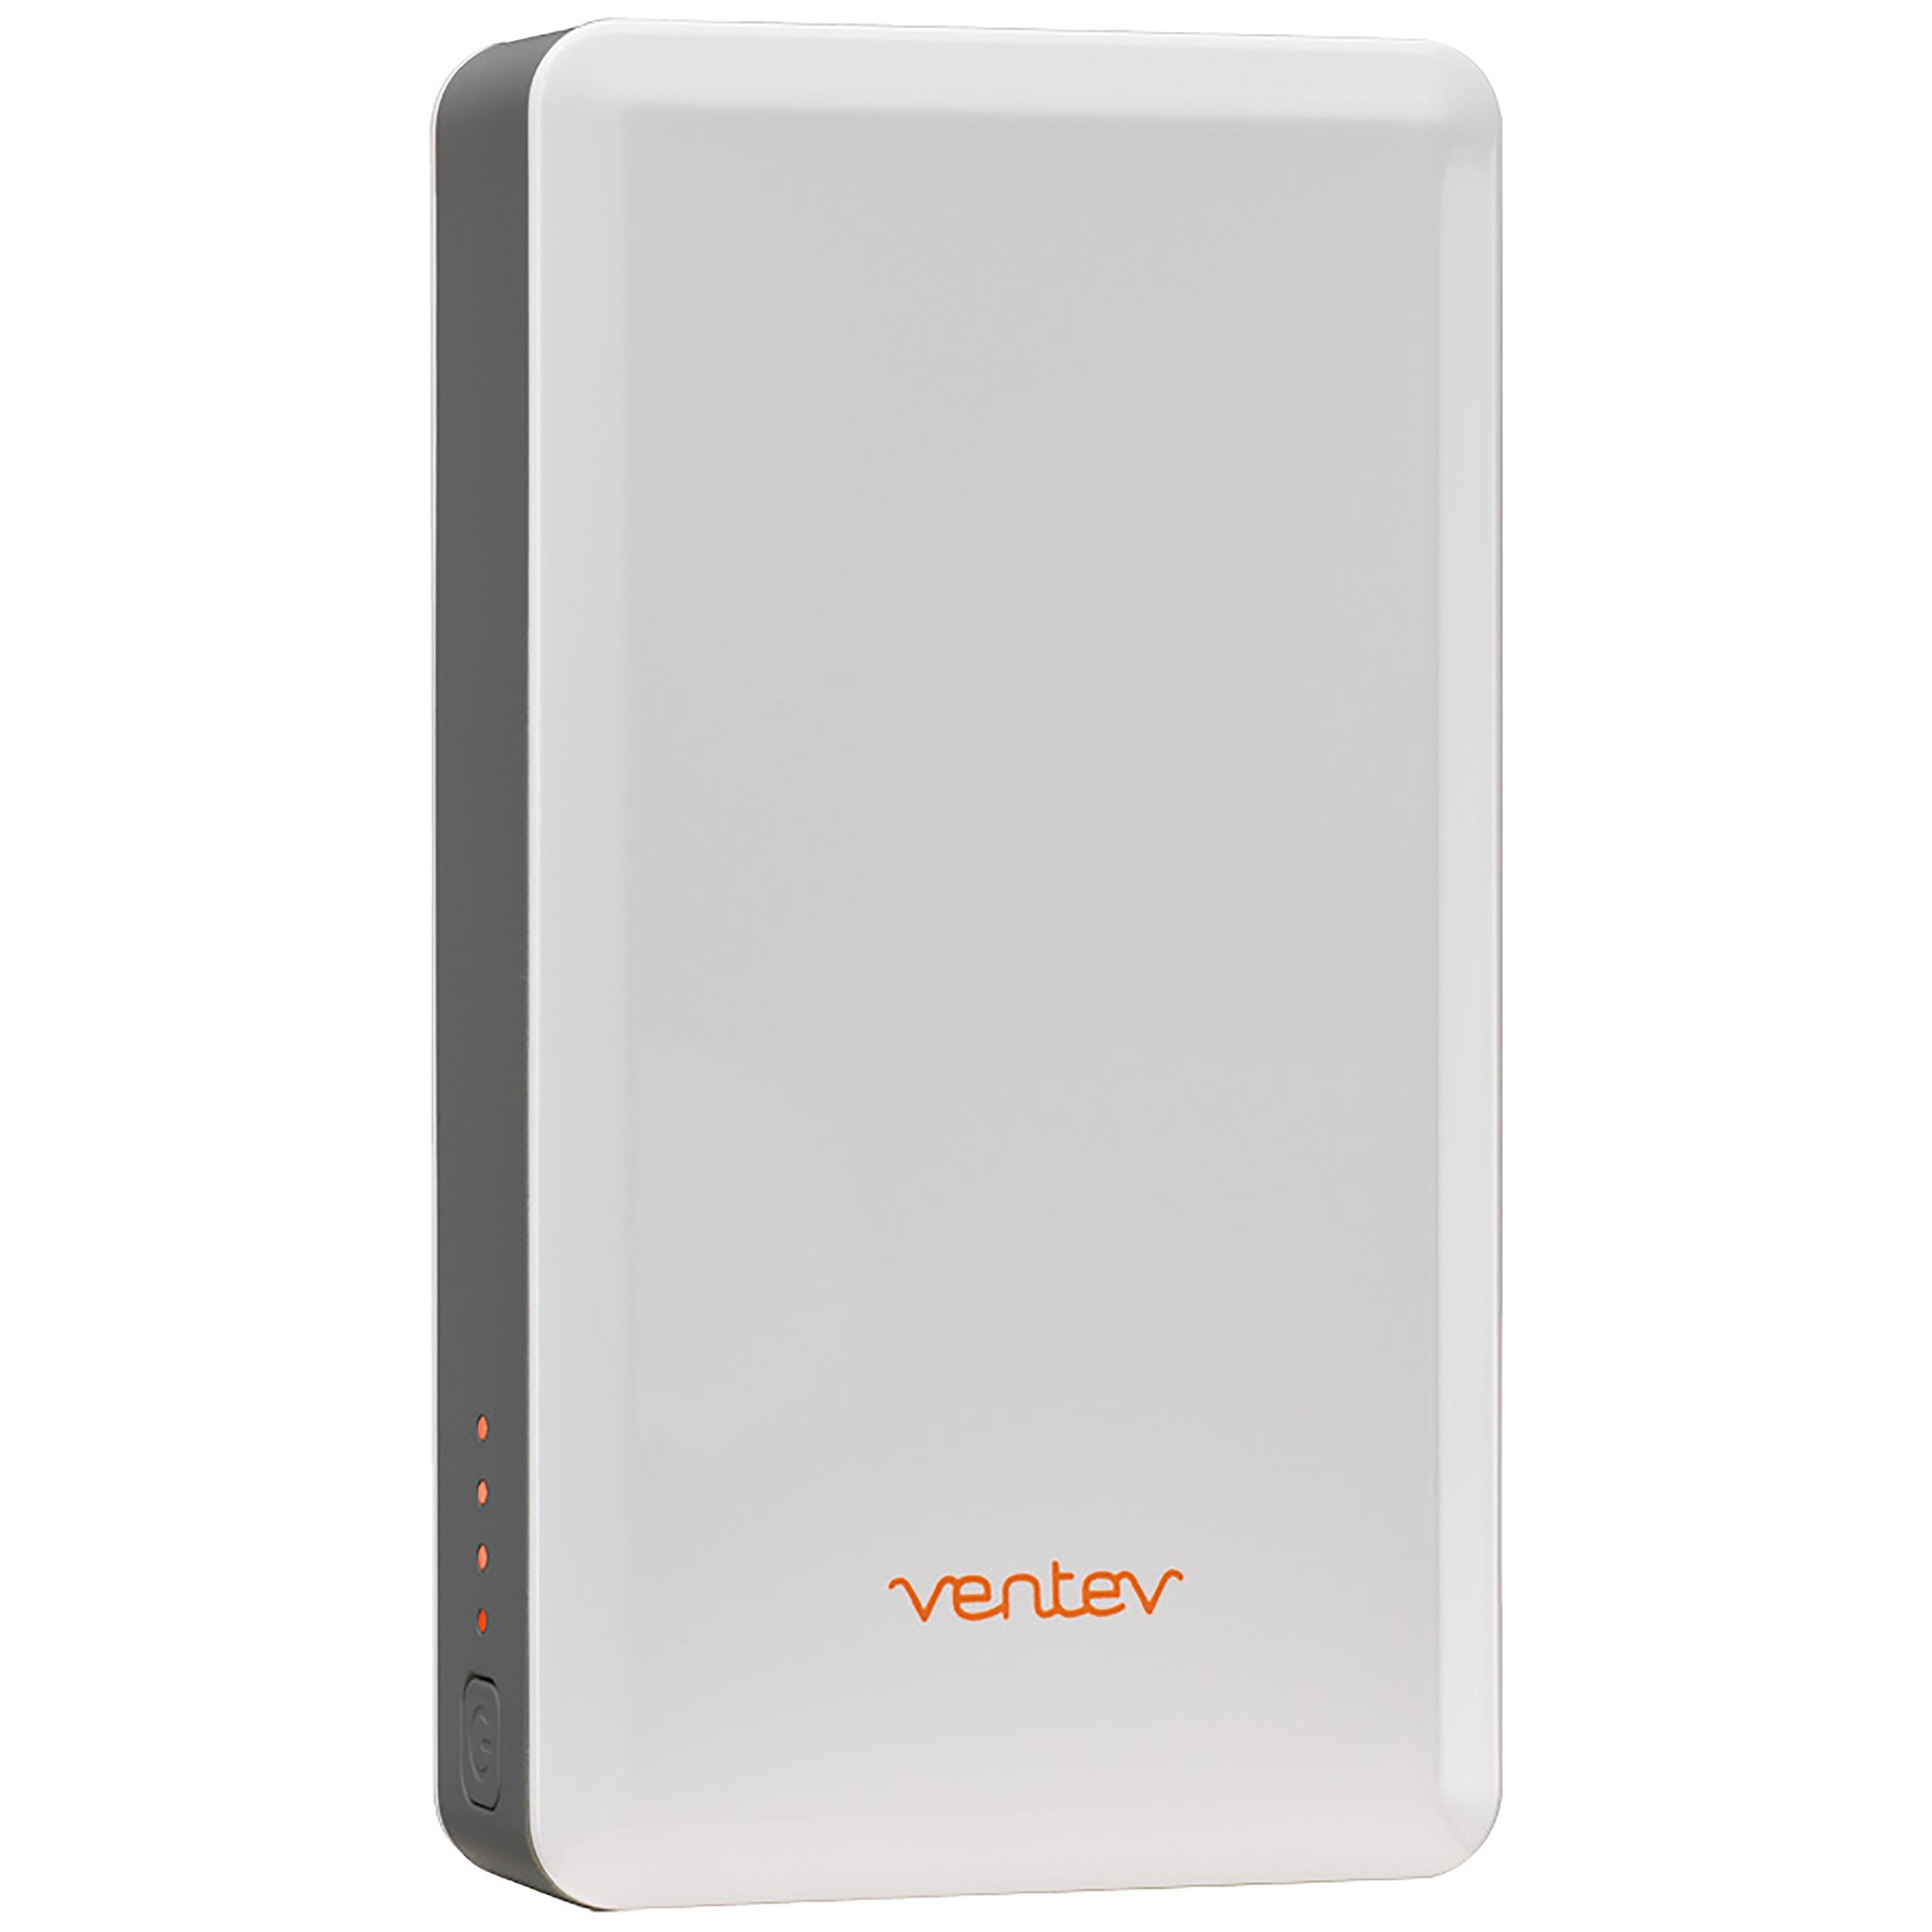 Ventev powercell 6000 - Two Port 6000mAh Portable Battery, White/Gray (Certified Refurbished)